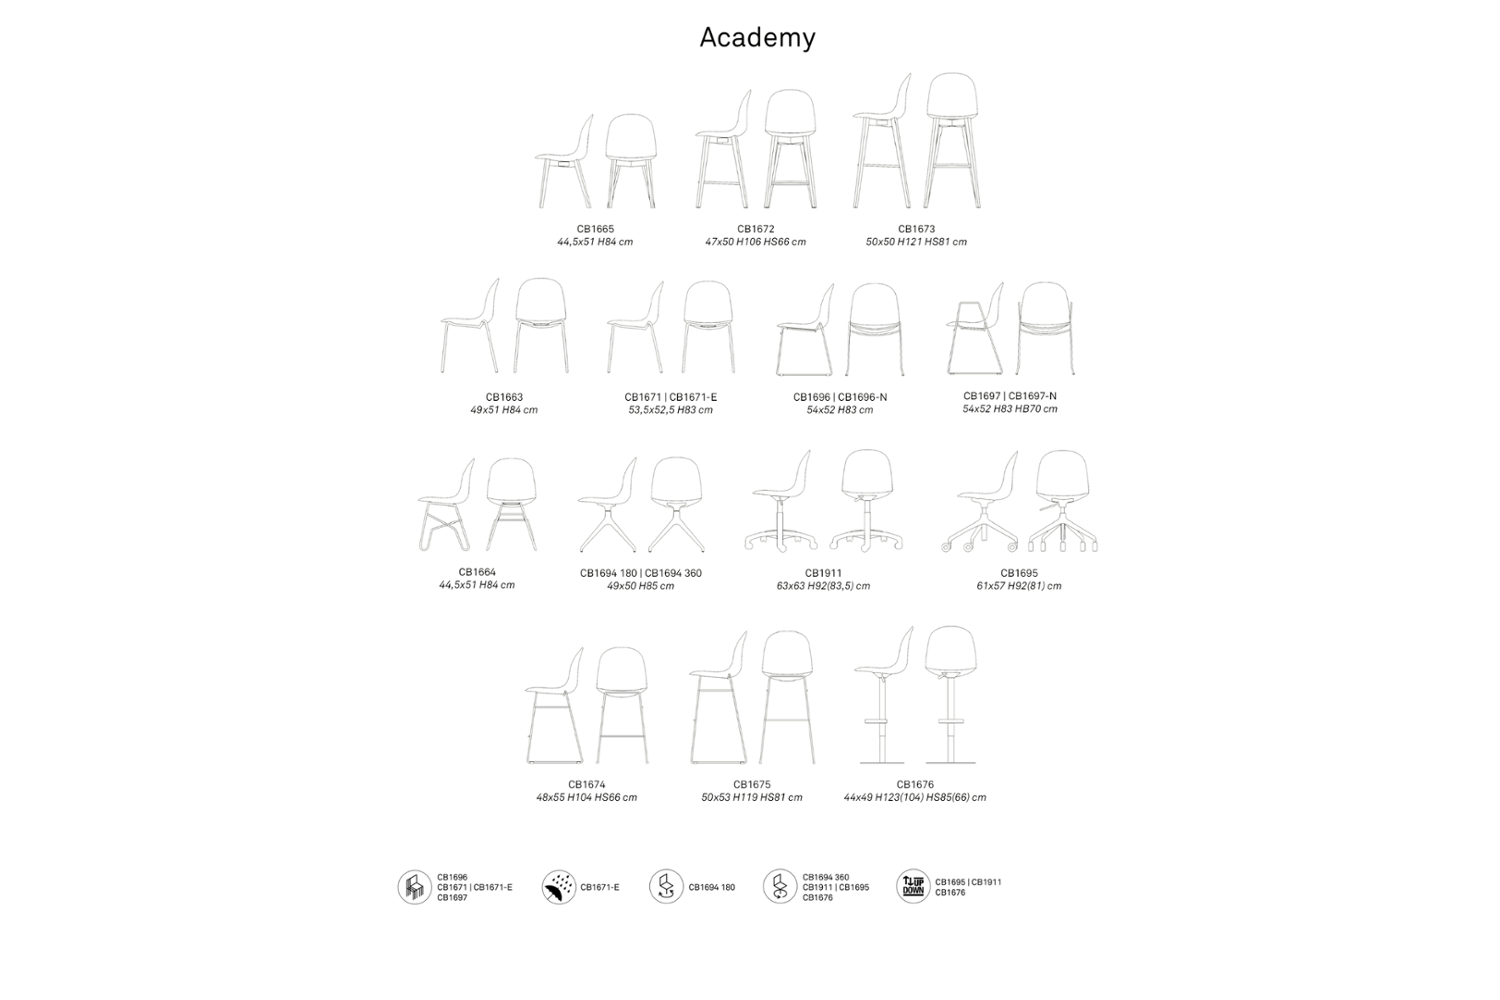 ACADEMY SCHEMATIC CONNUBIA1 ACADEMY SCHEMATIC CONNUBIA1.png connubia schematic dining armchair seating 2020